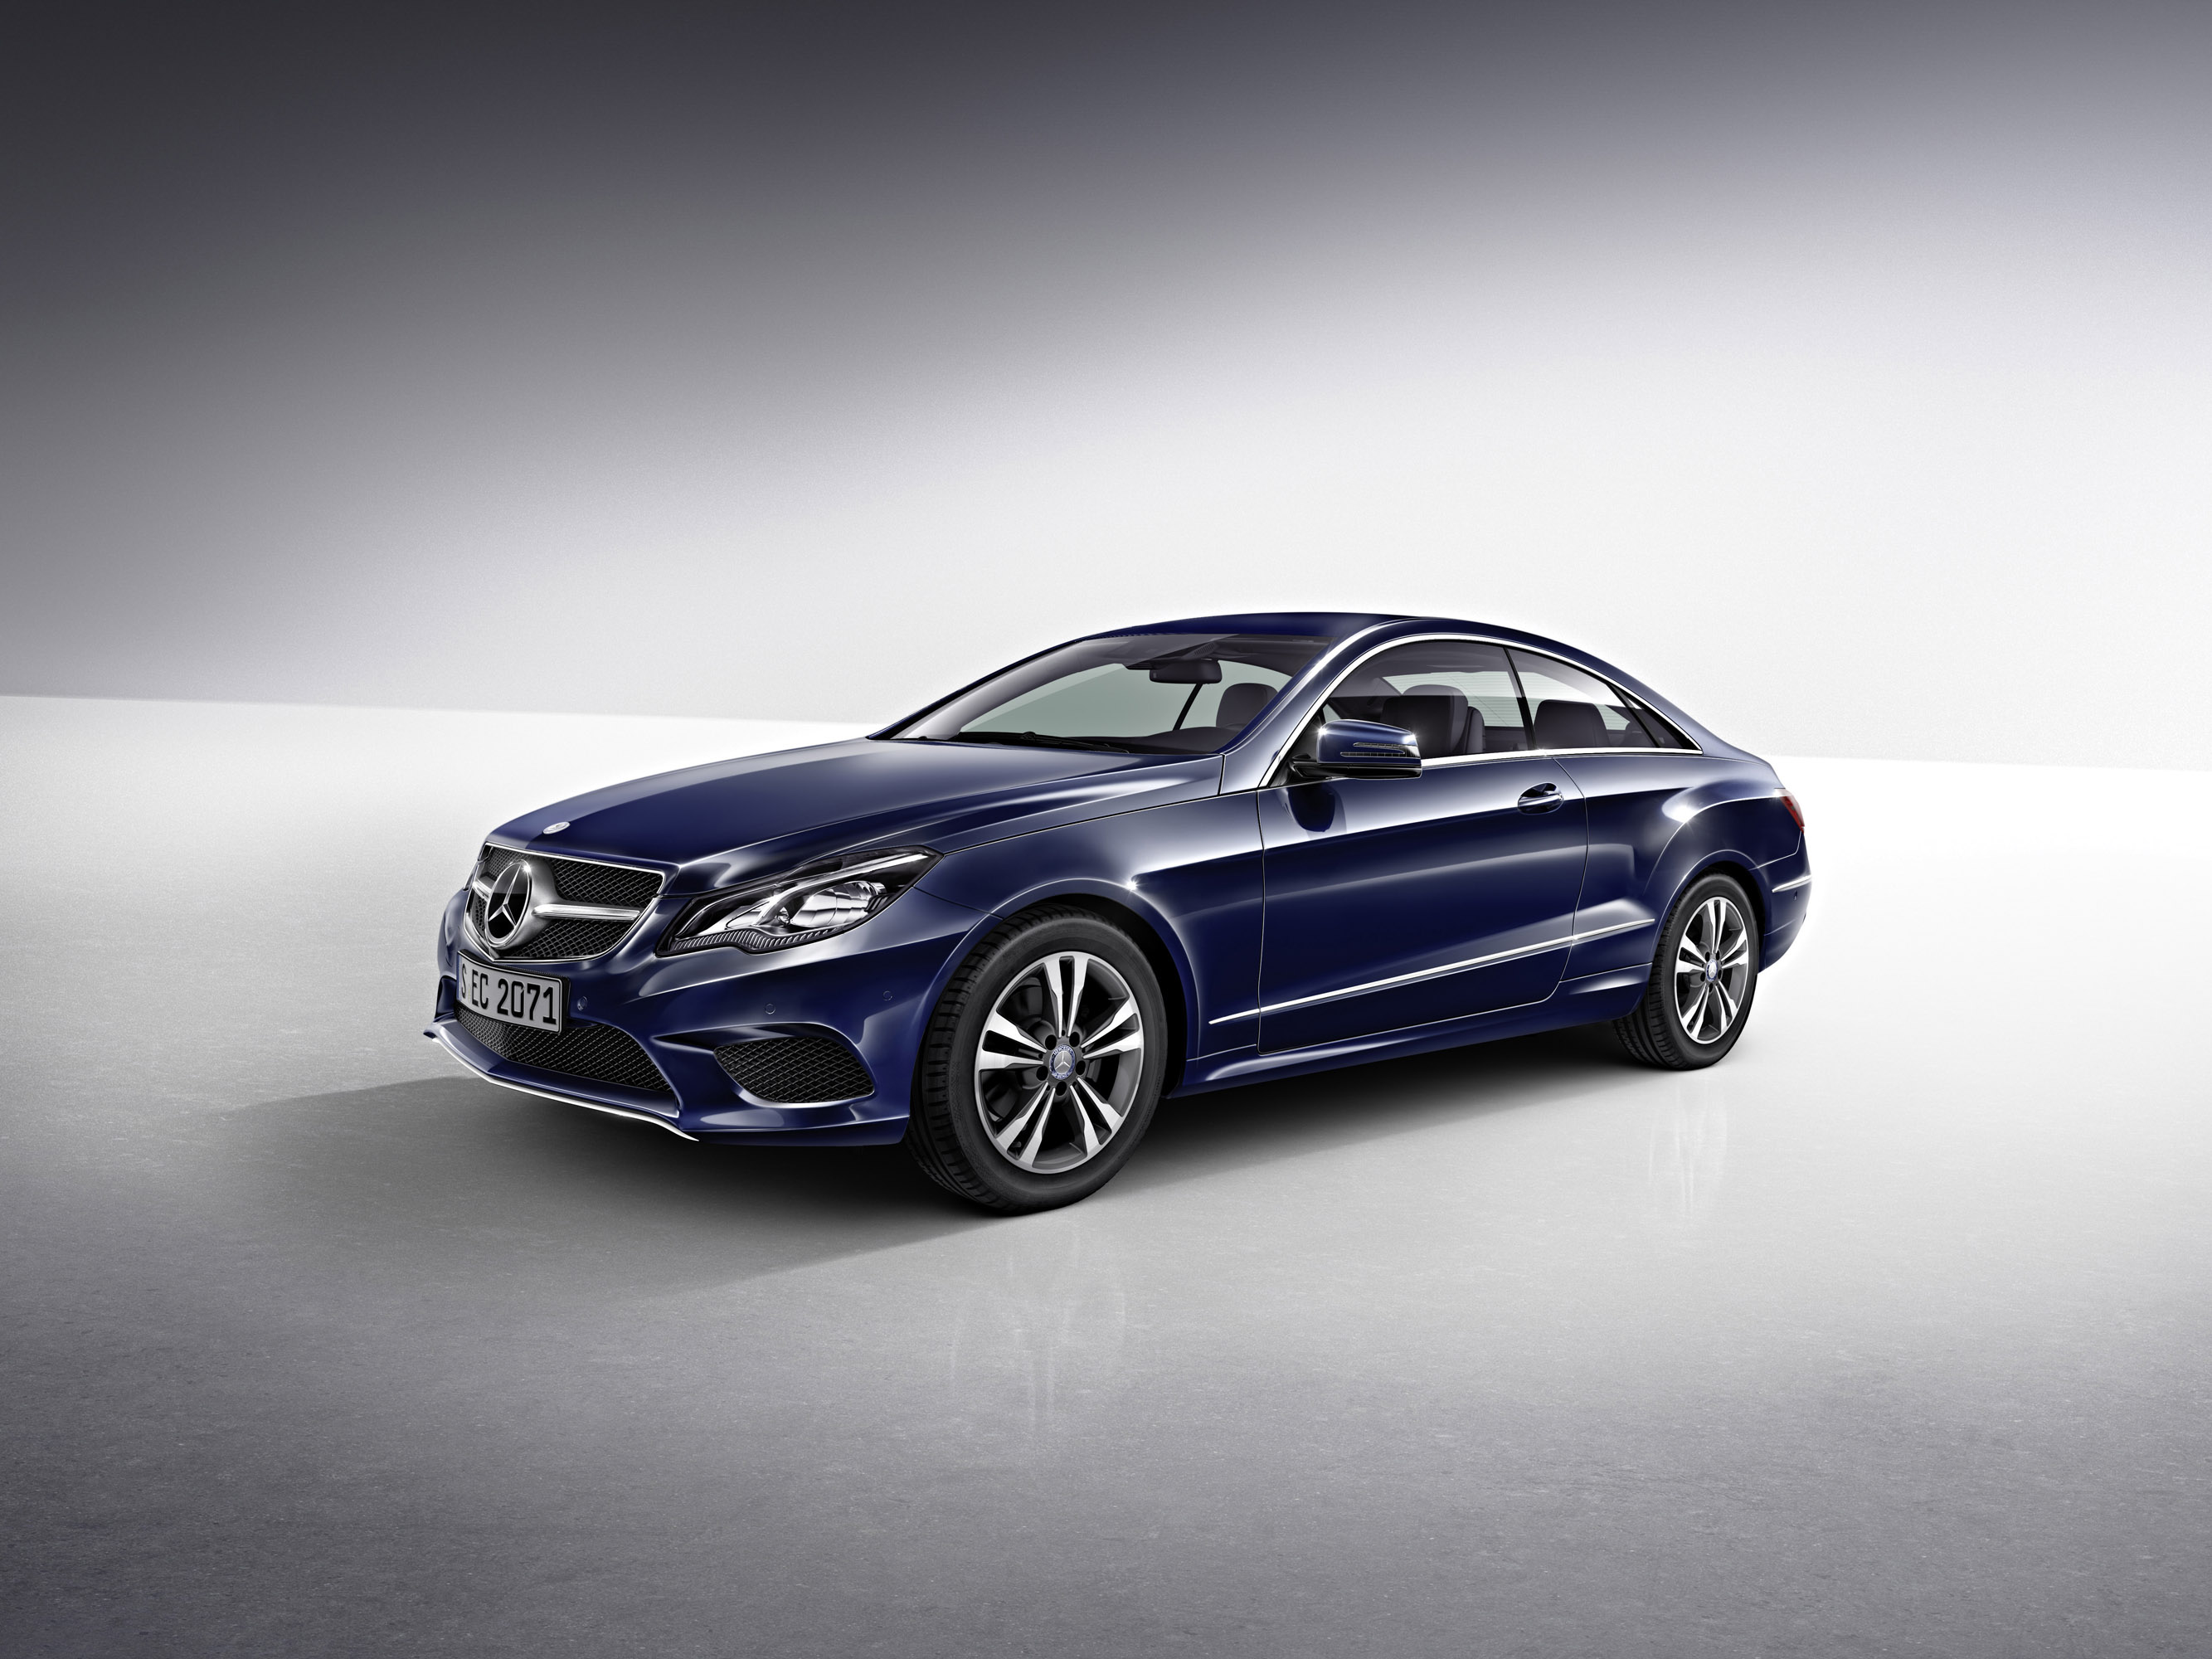 2014 mercedes benz e class coupe hd pictures for 2014 mercedes benz e class coupe